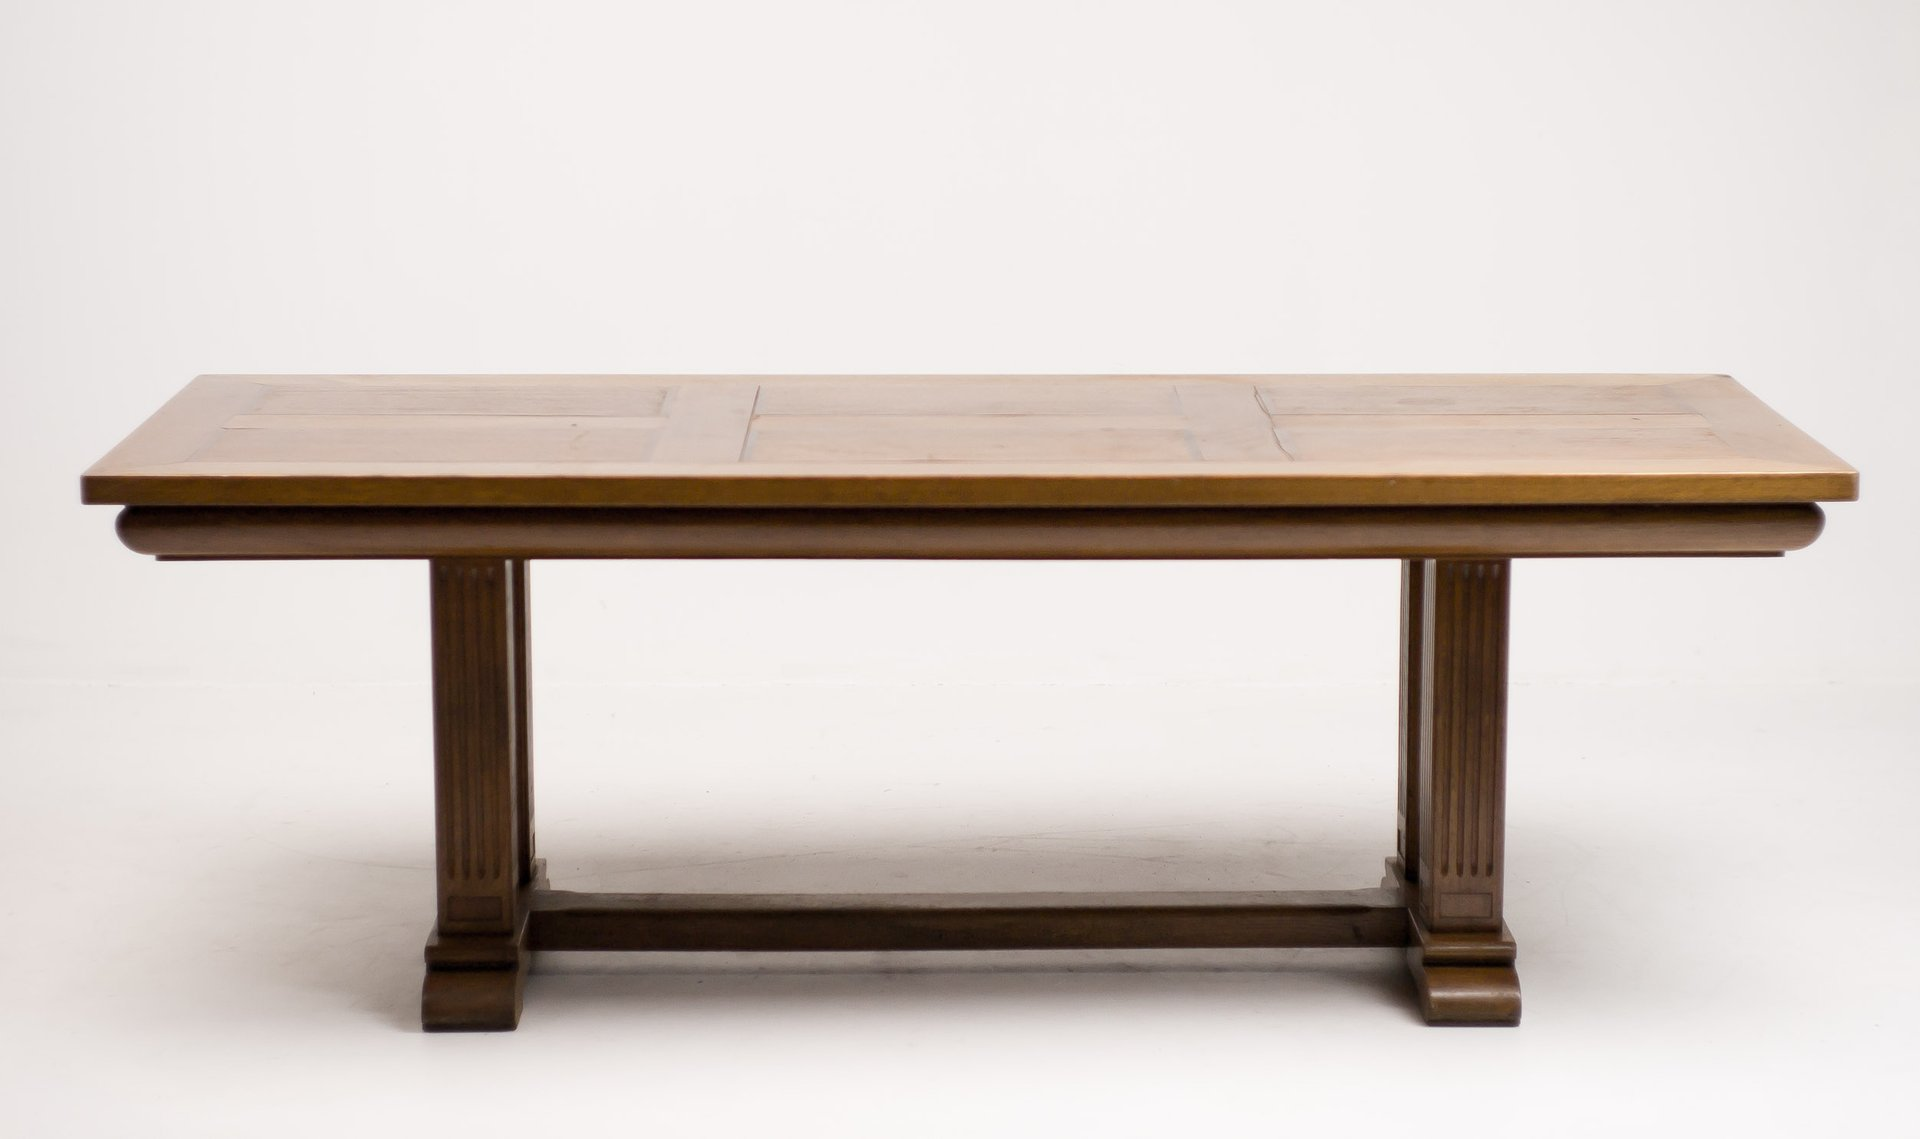 Architectural Oak Dining Table 1920s